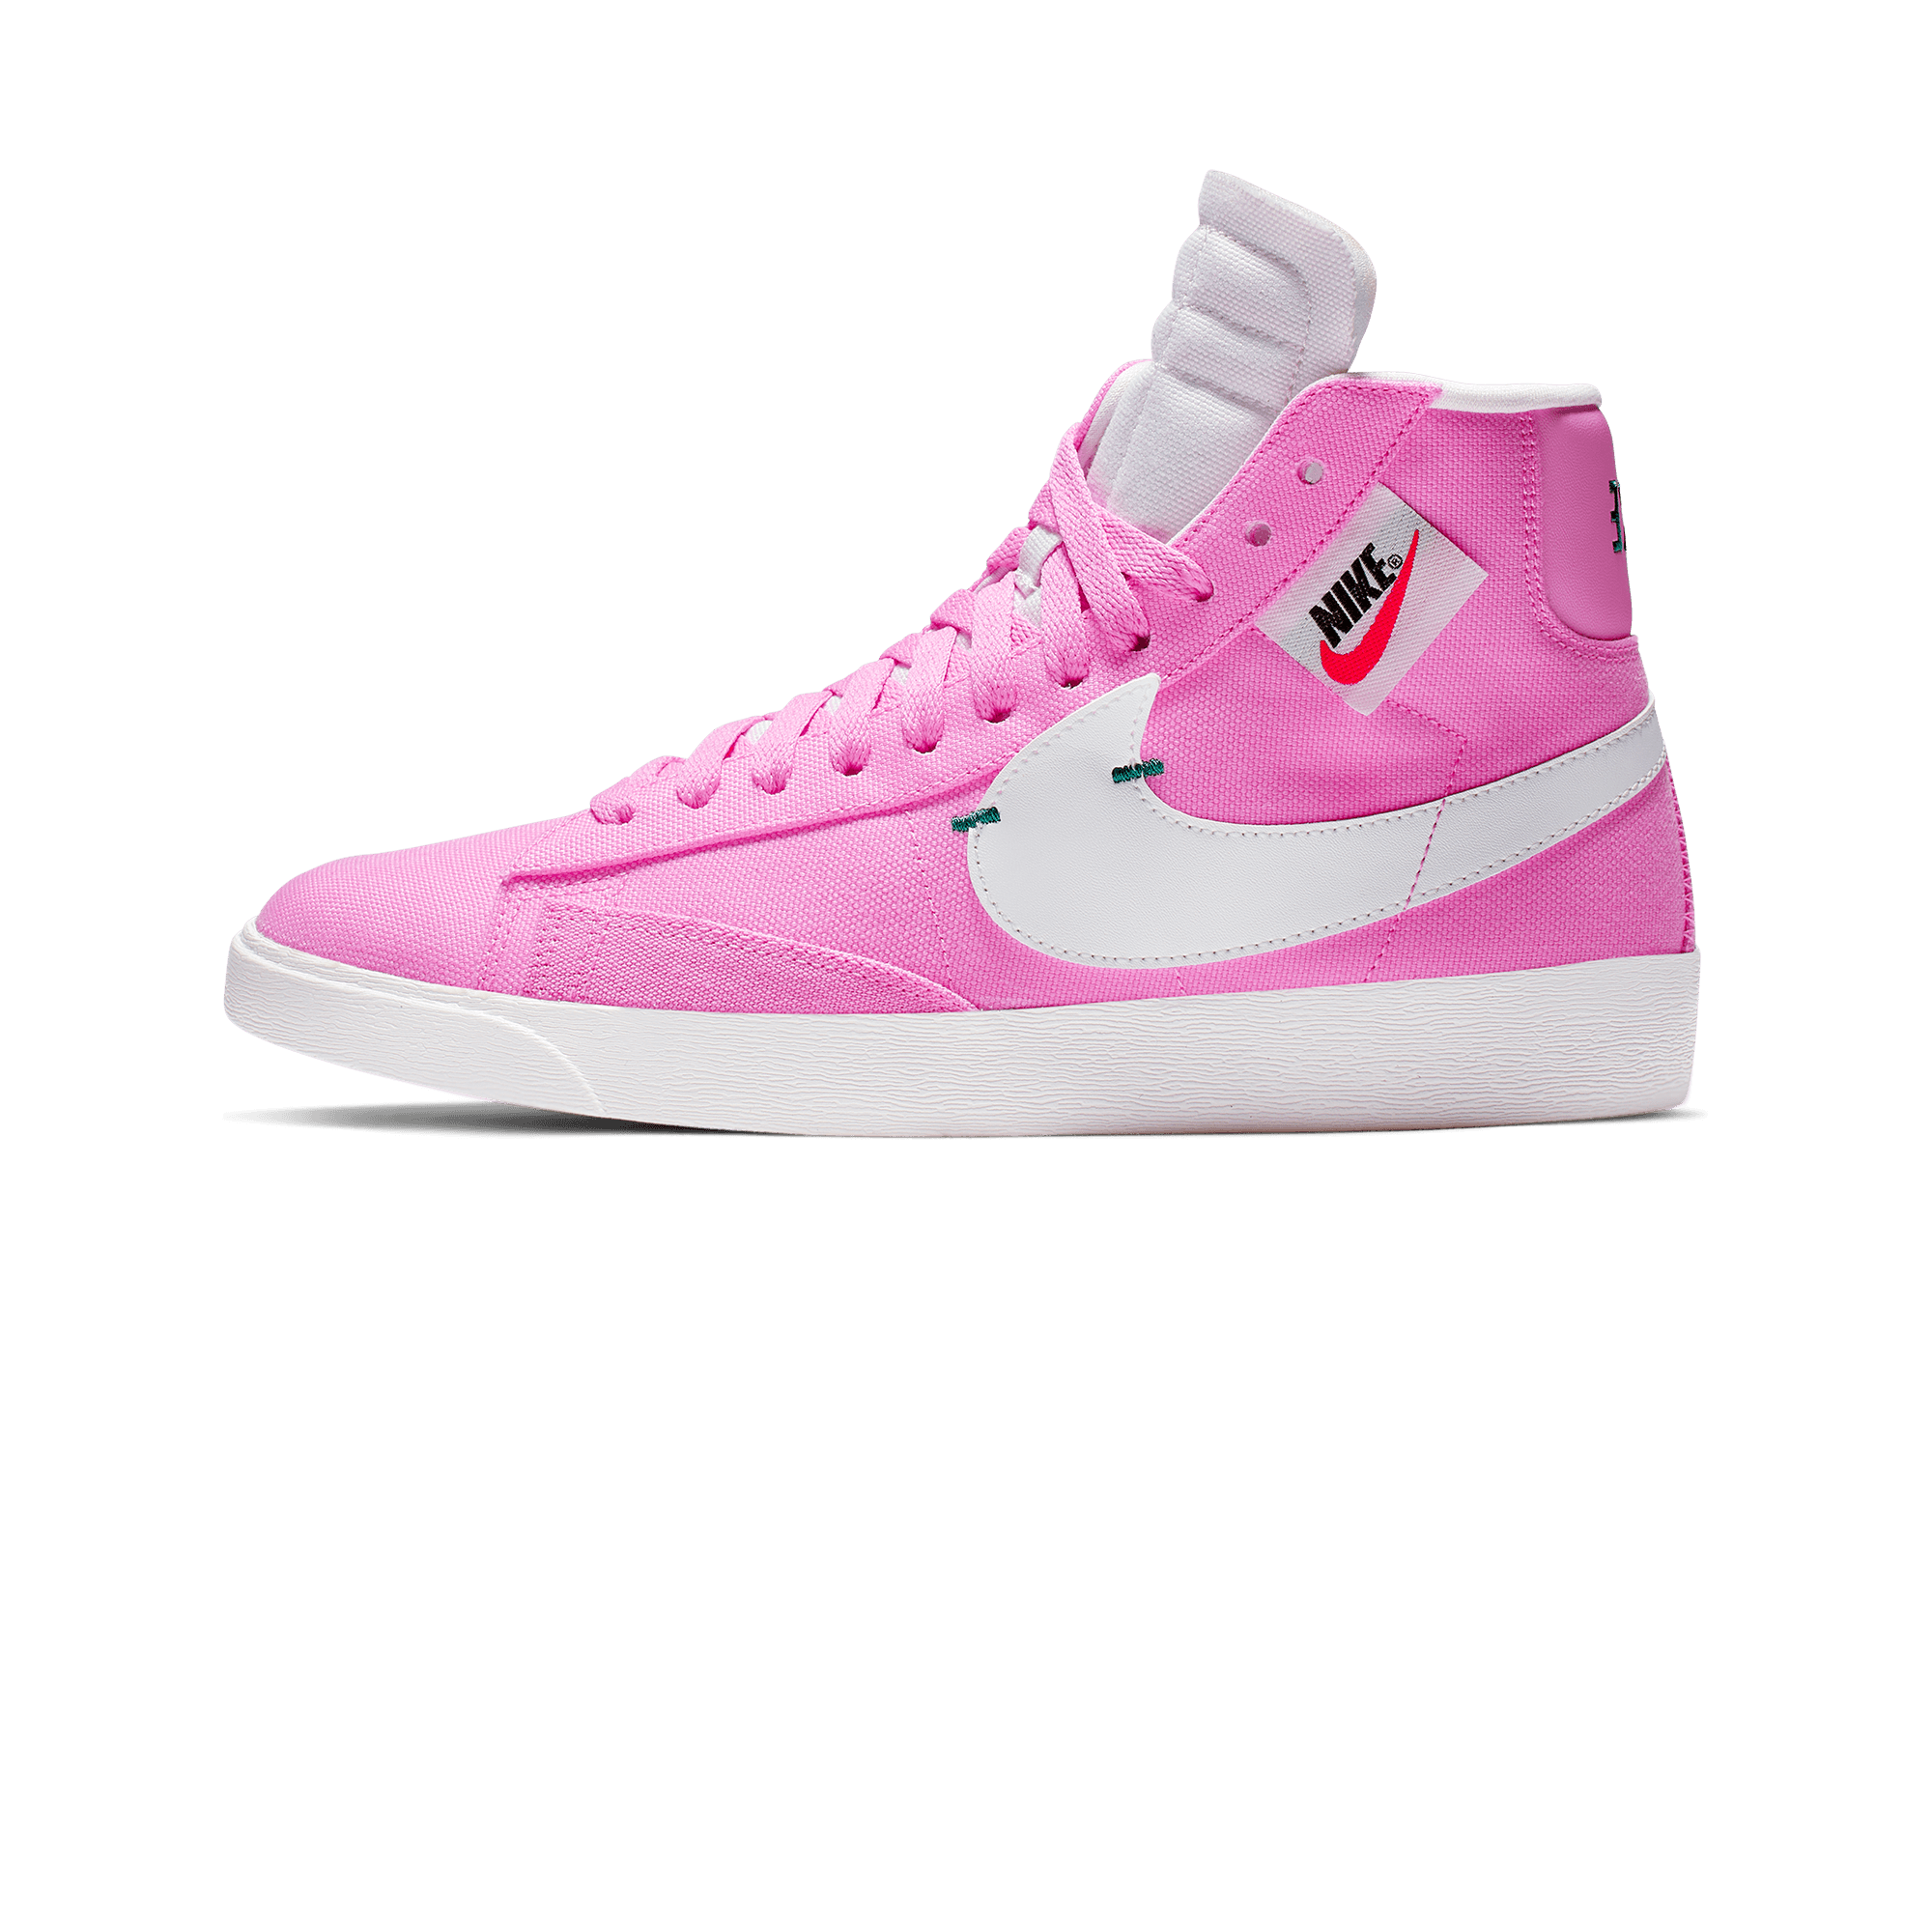 premium selection 7cf5c 2f6a1 Blazer Mid Rebel pink   white